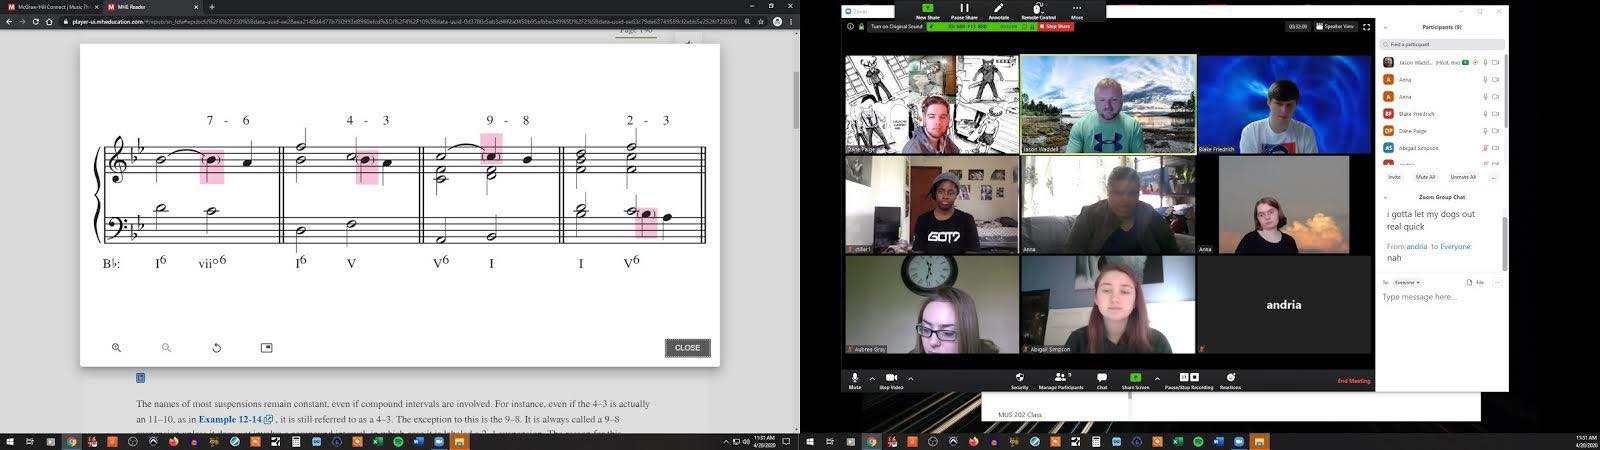 Music notation and virtual class via Zoom